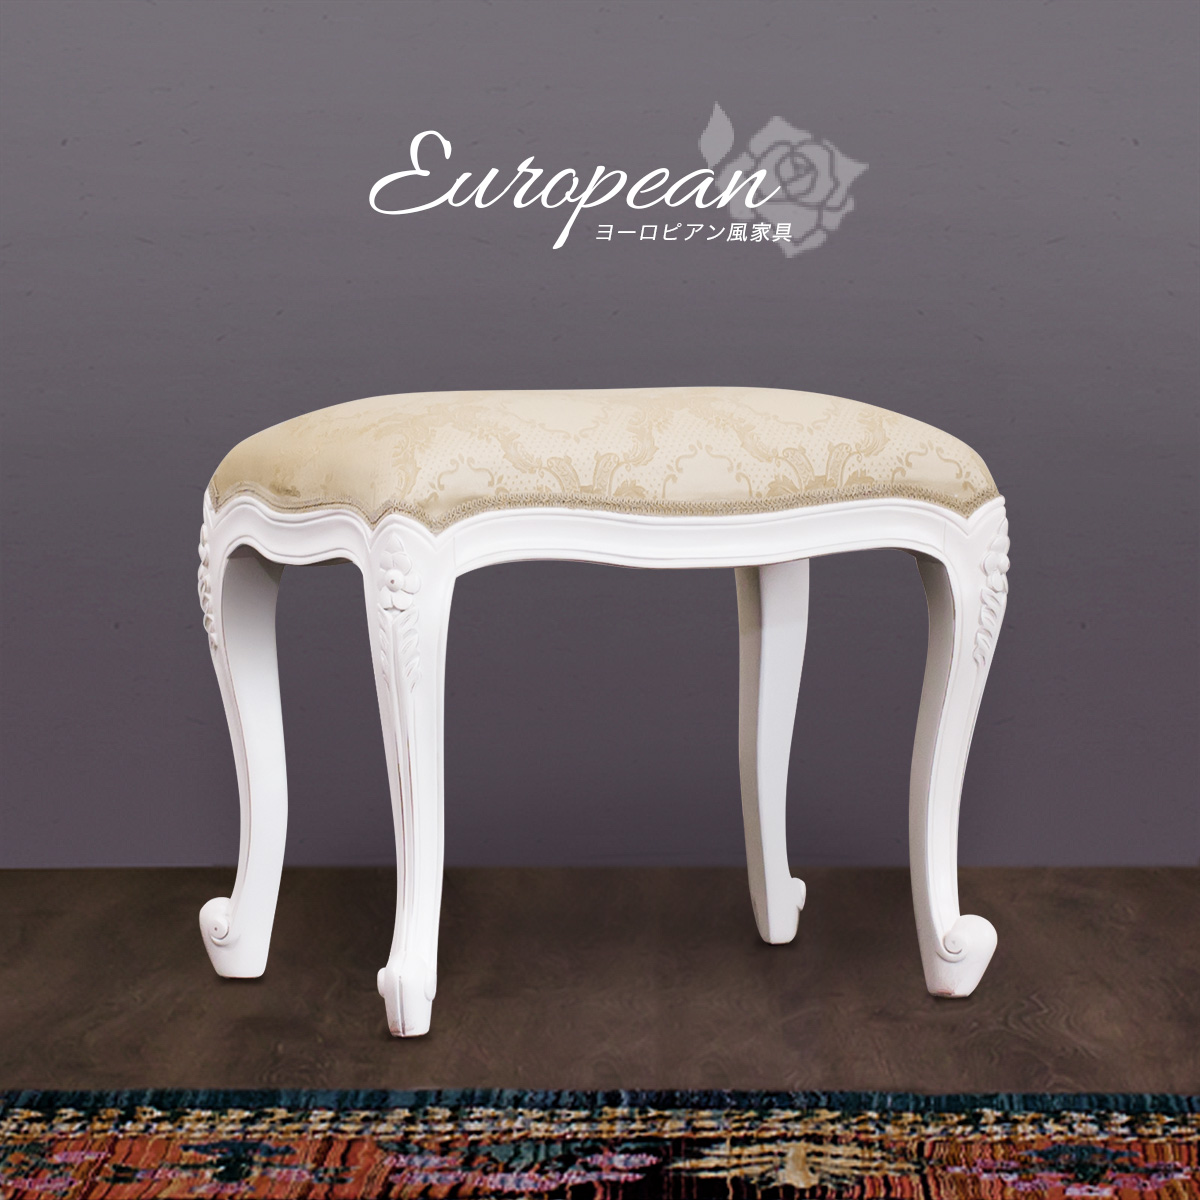 Stupendous Soundless And Stealthy Steps Stool Princess Furniture Rococo Dole Chair Princess Furniture White White Stool Woodenness European Design Antique Like Andrewgaddart Wooden Chair Designs For Living Room Andrewgaddartcom